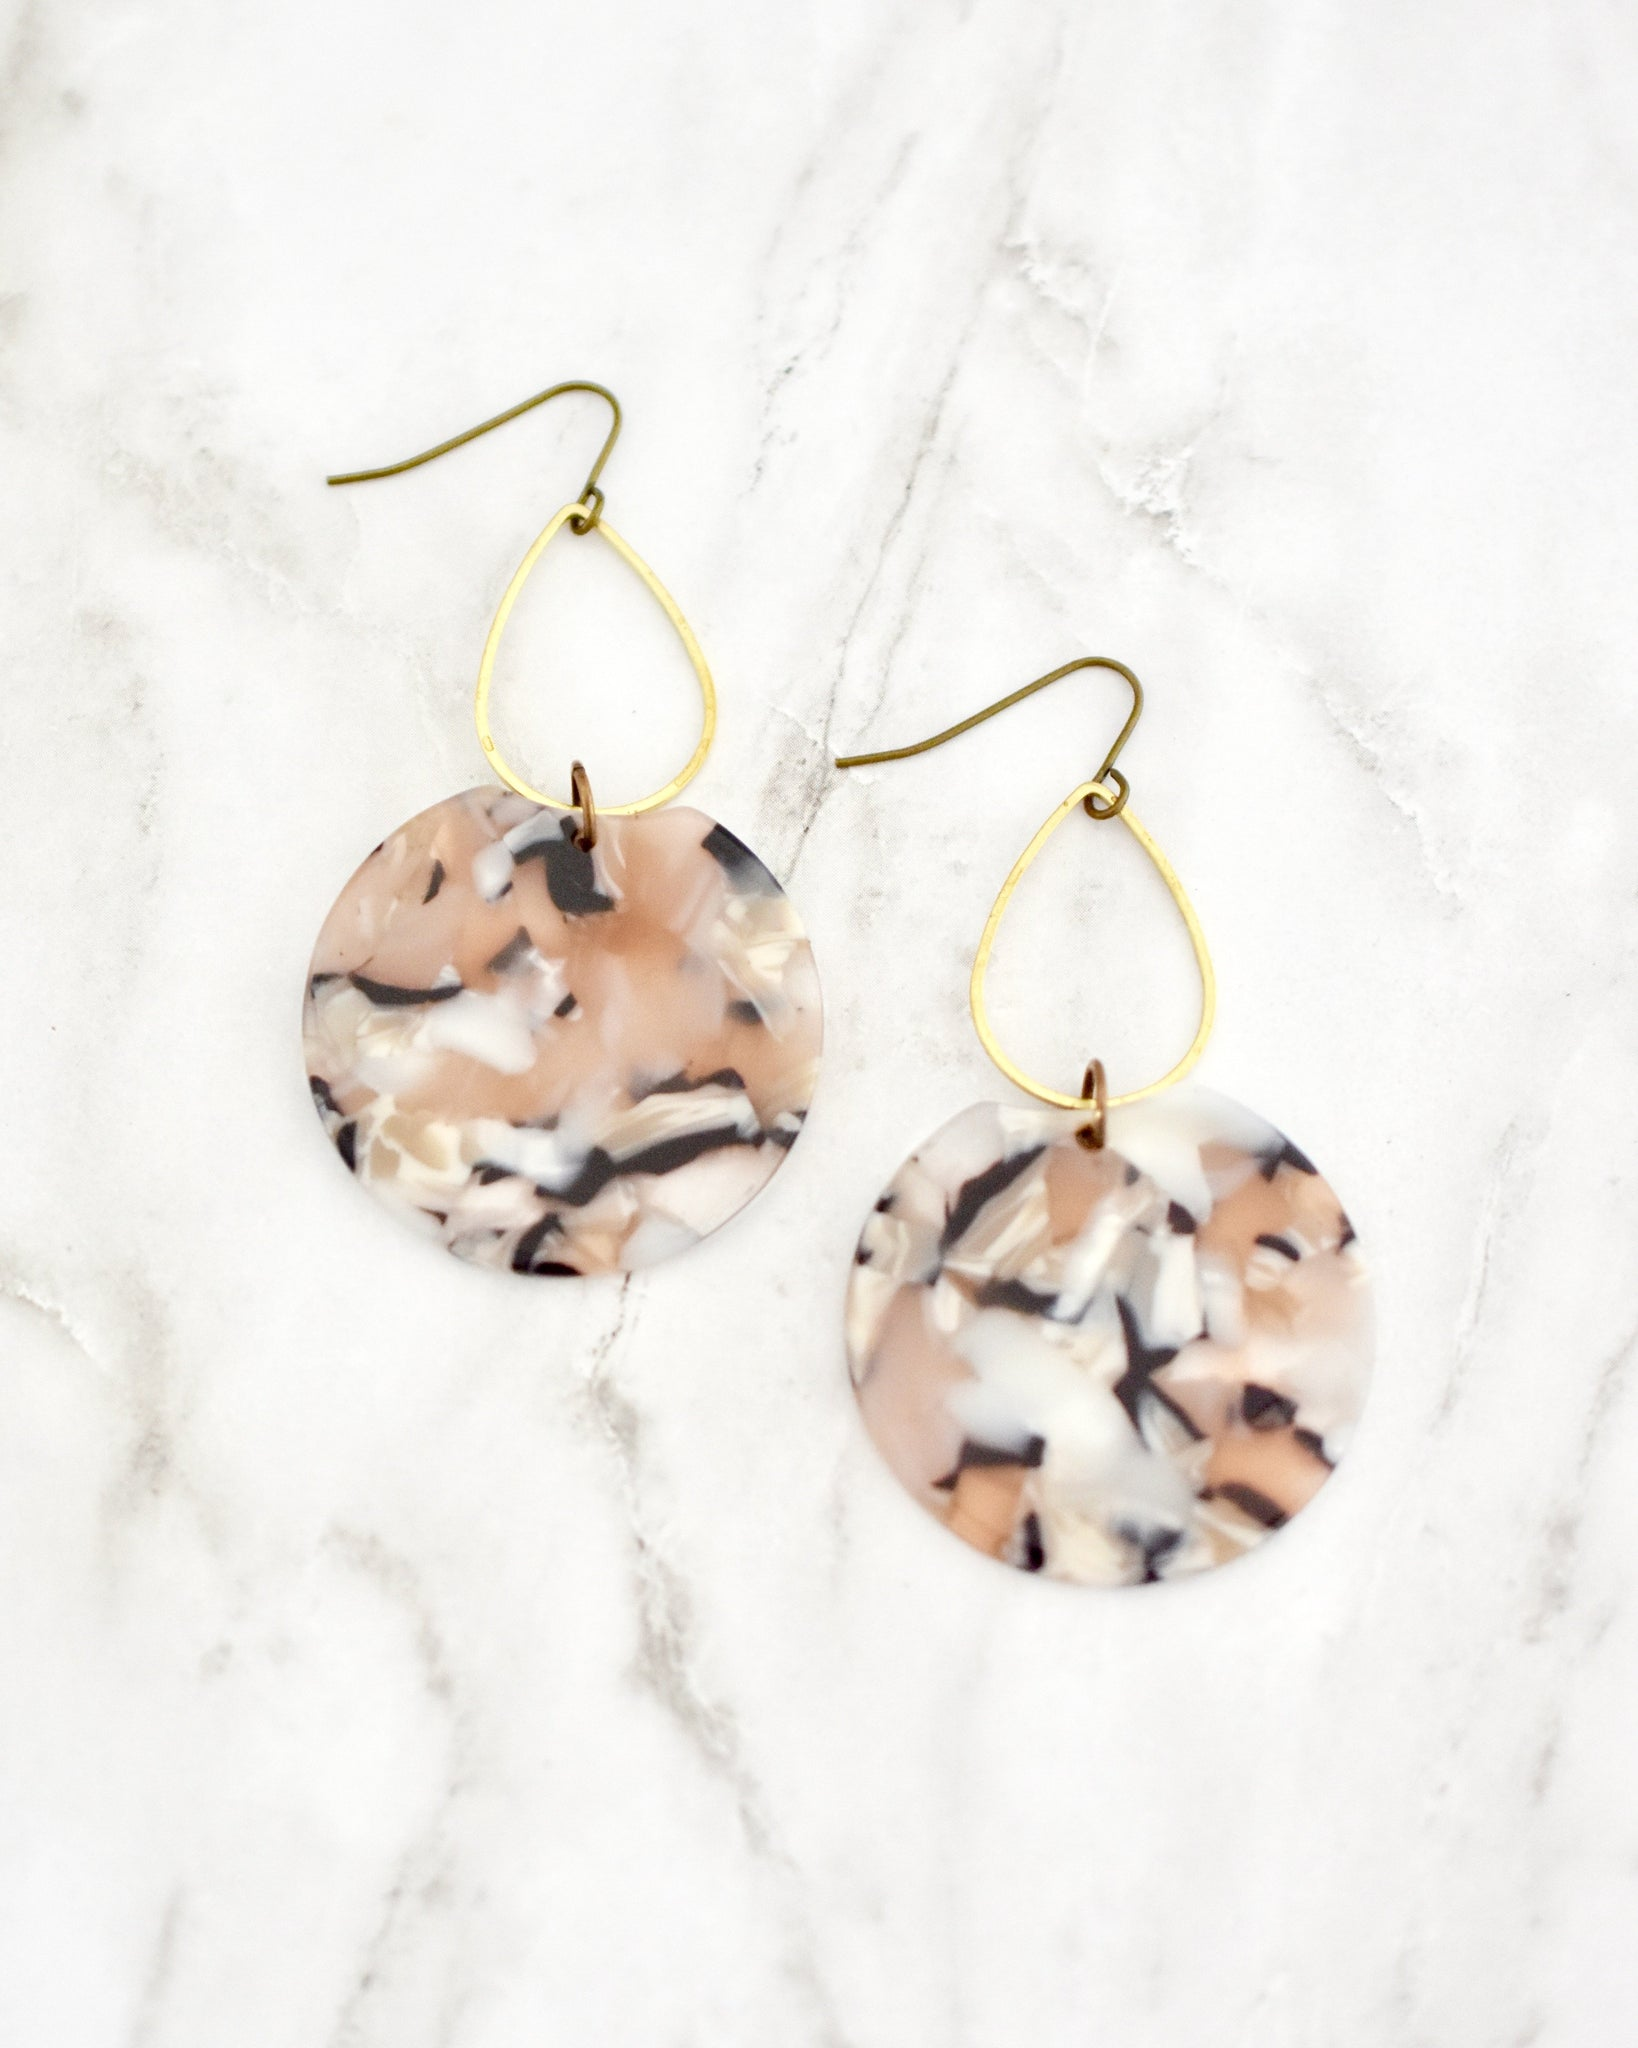 Peach Etch Earrings